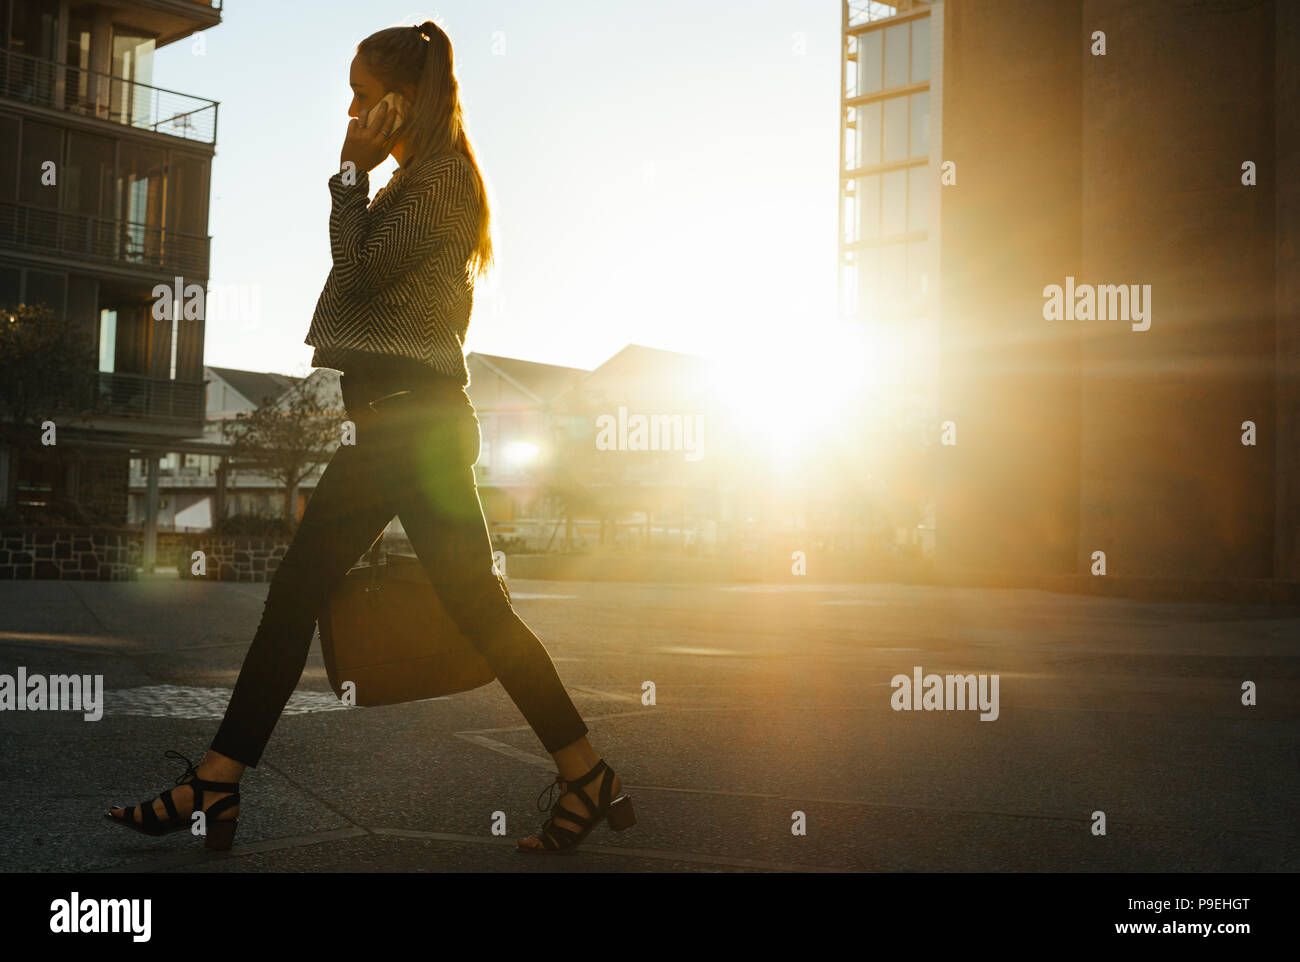 Businesswoman commuting to office early in the morning talking over mobile phone. Woman carrying handbag walking on city street to office. - Stock Image